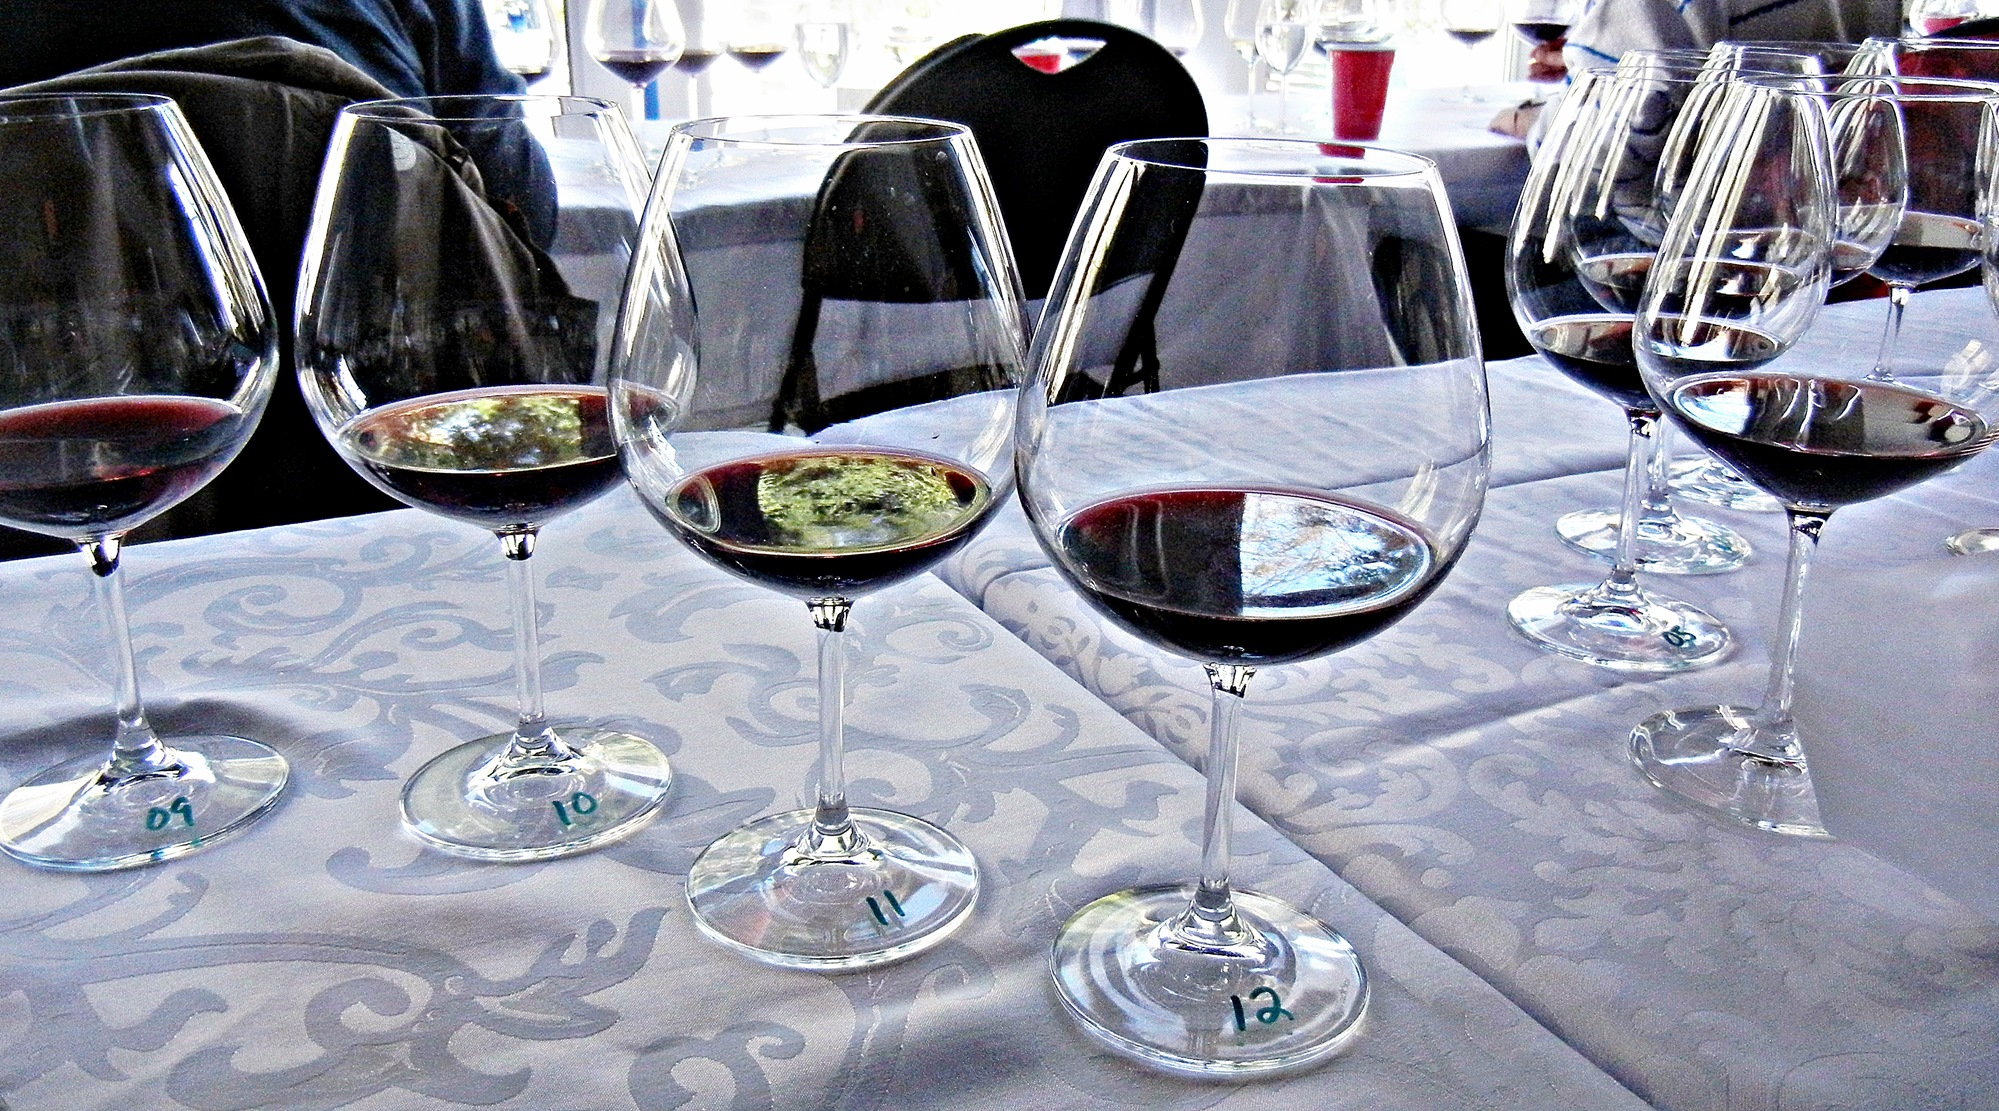 Averill Creek Pinot Noir Vertical Tasting Glasses